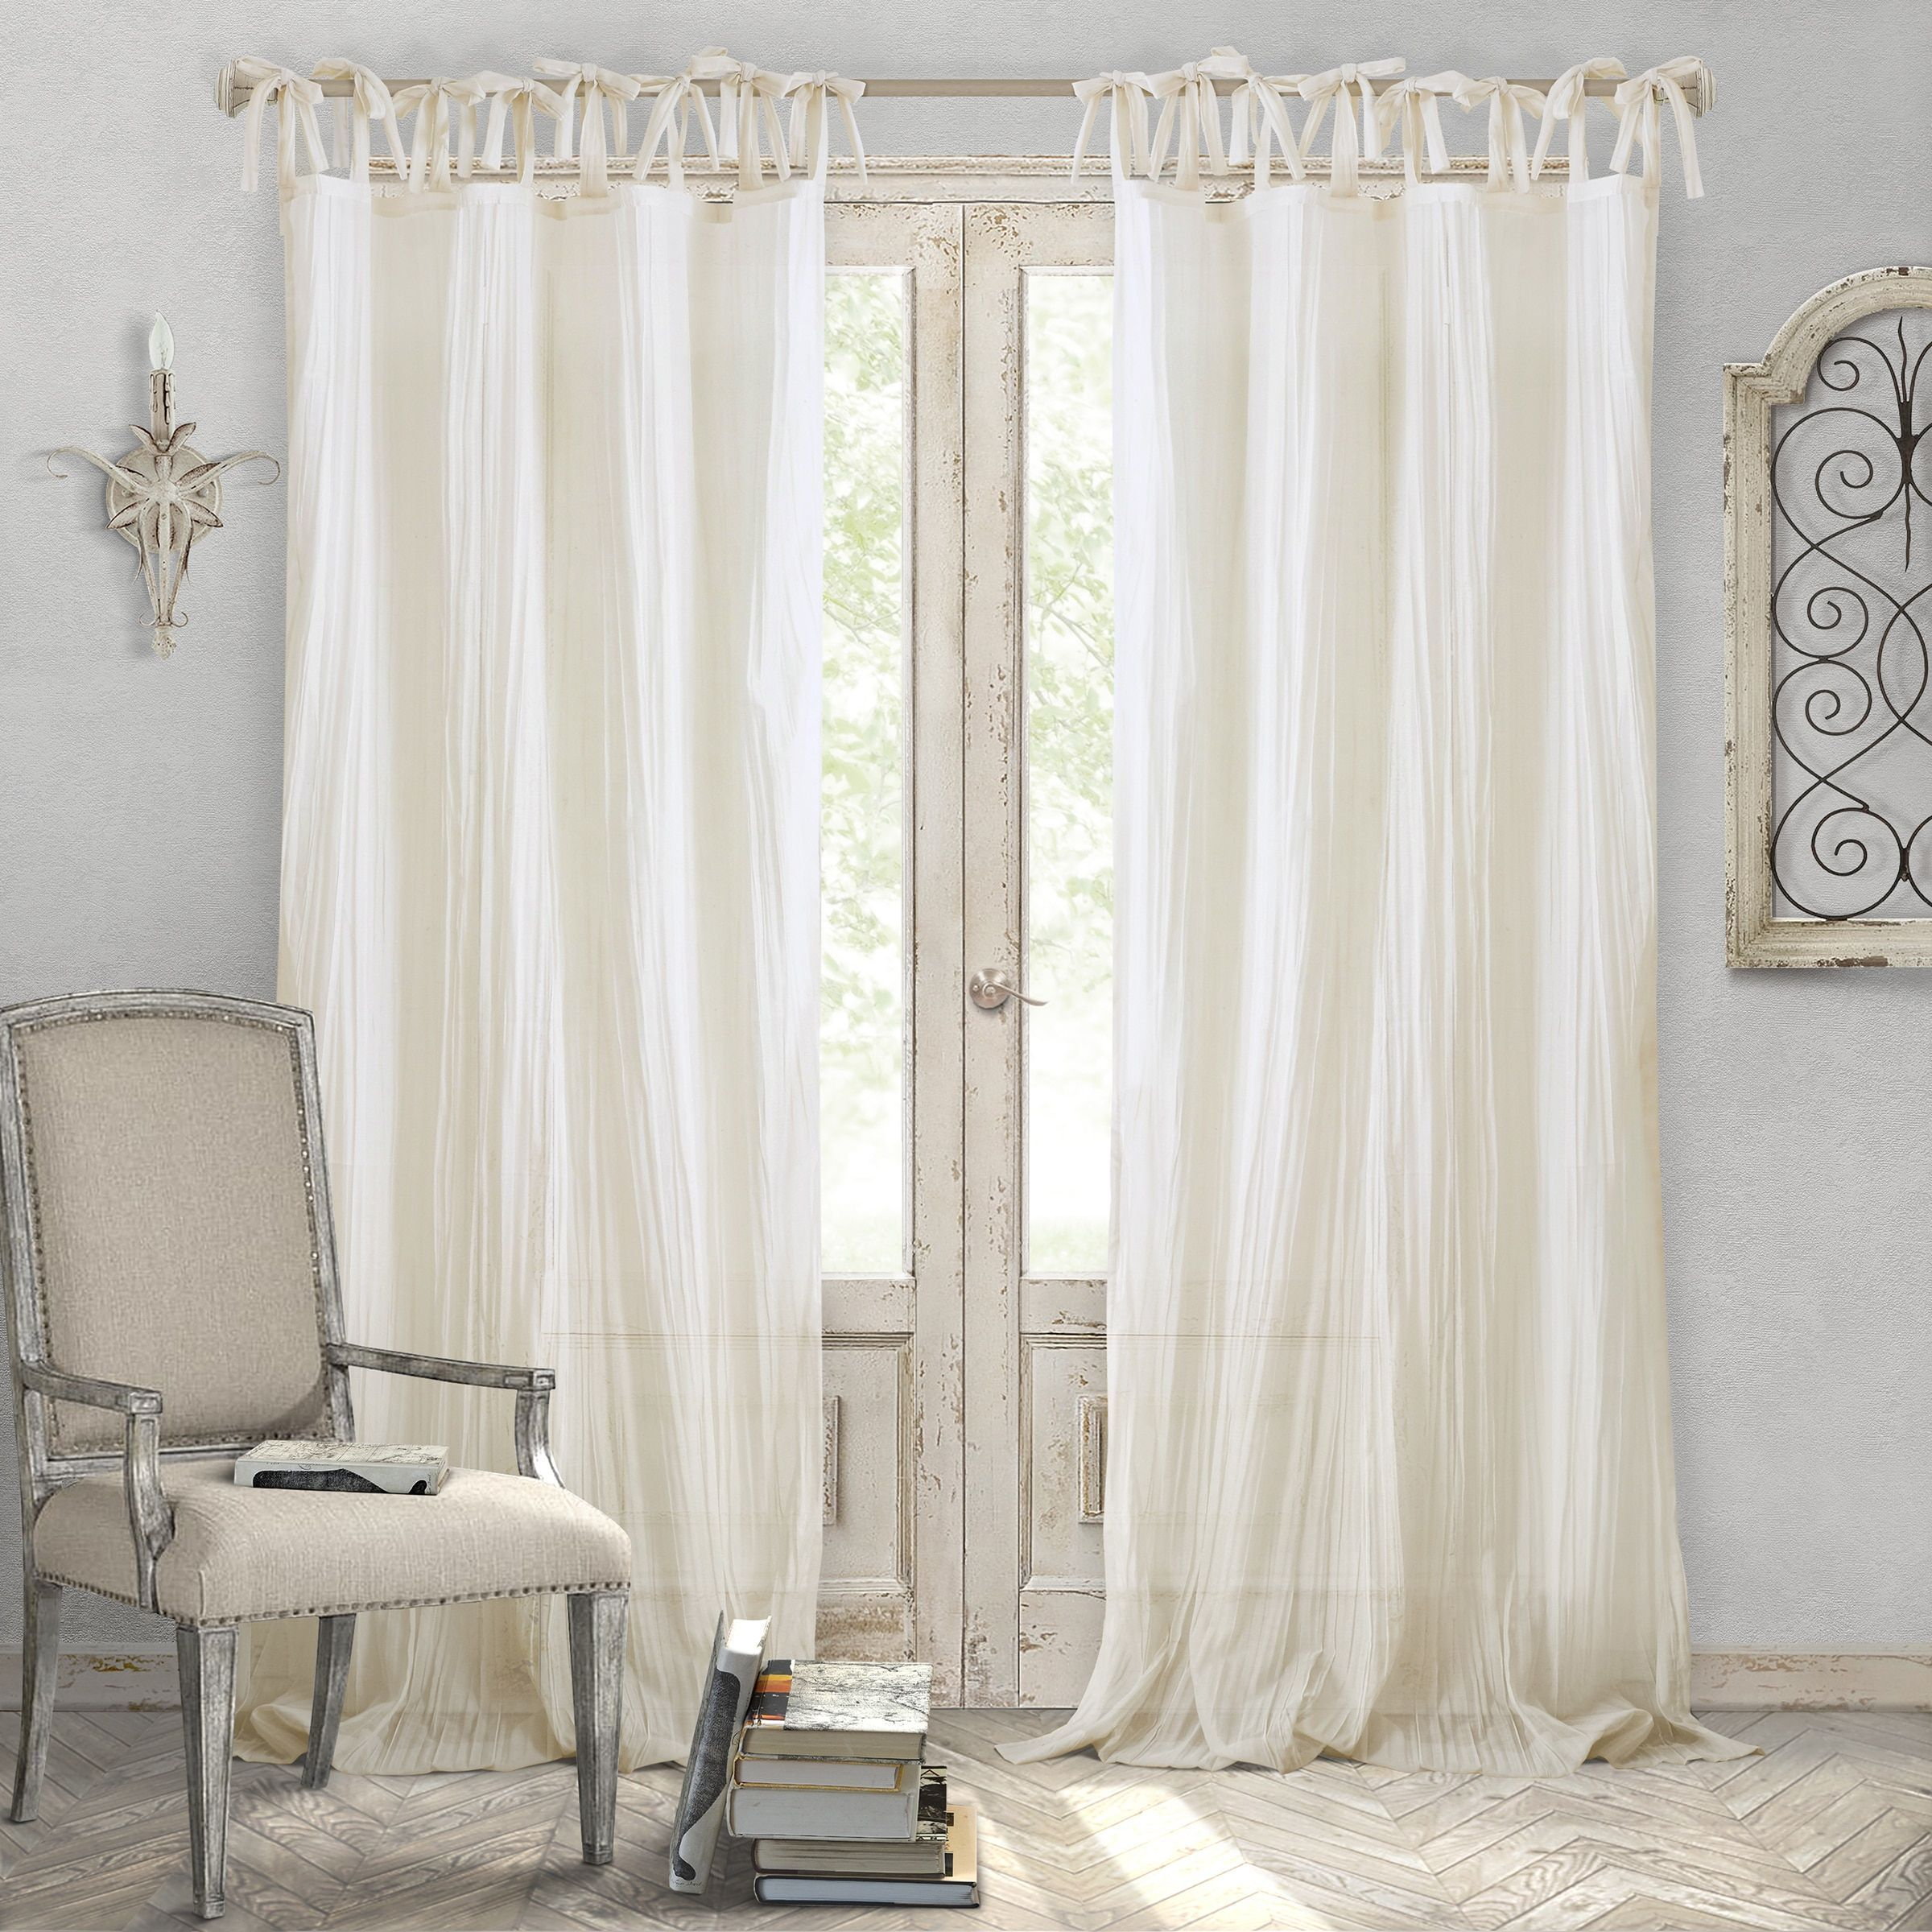 inspirational image curtains elegant treatments kitchen window curtain fresh style furniture cottage farmhouse of